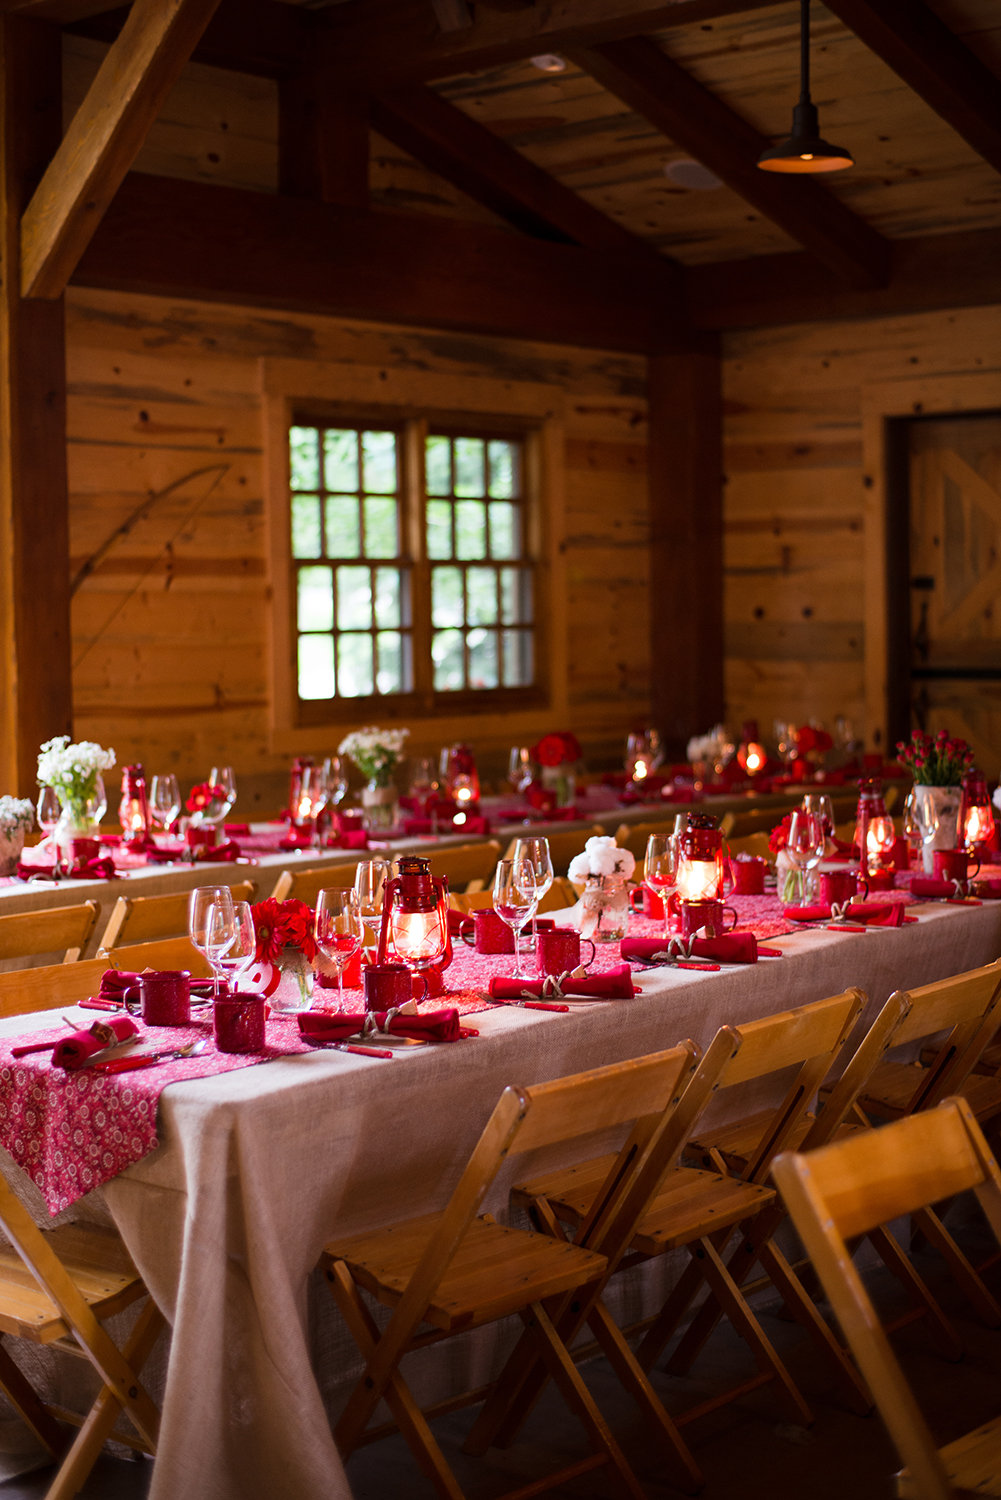 10 ideas for a chic country themed wedding bridalguide for Country wedding reception decorations